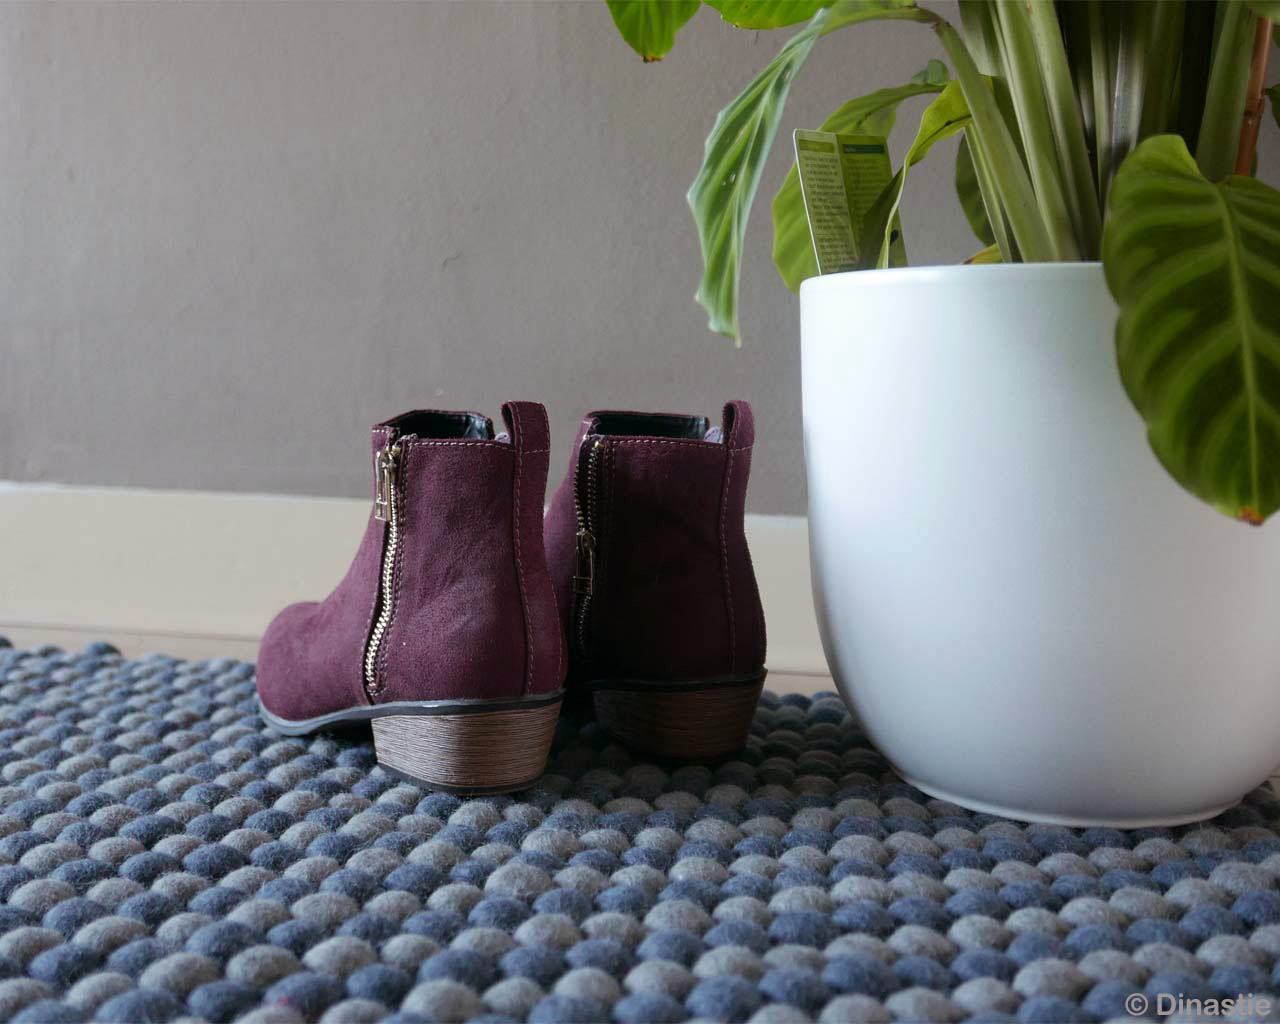 purple shoes and white pot asian rugs